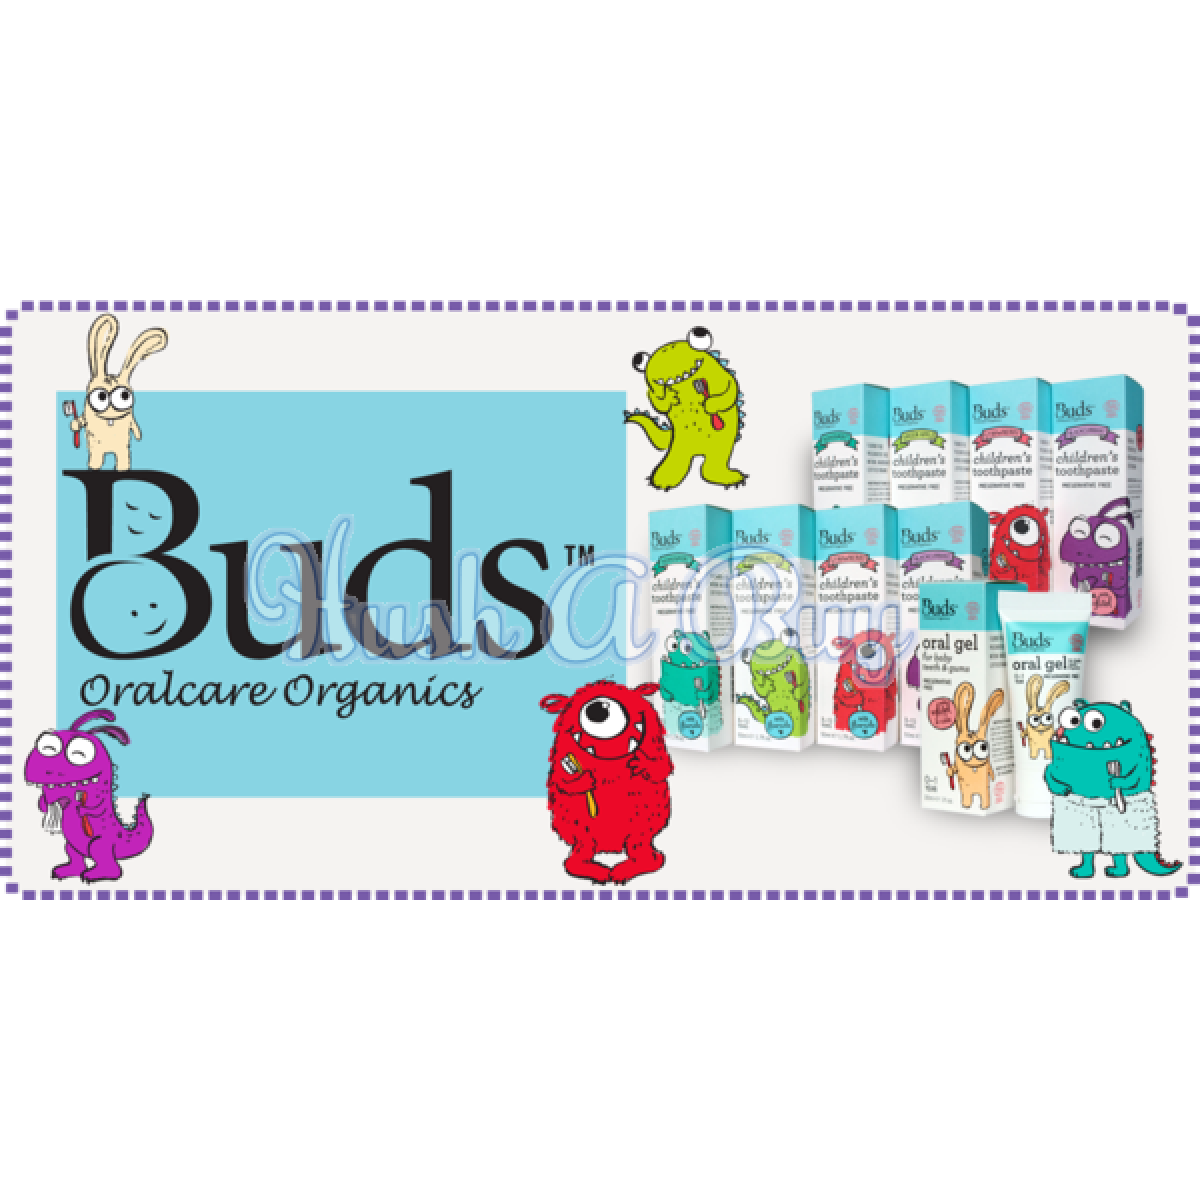 Buds Children's Toothpaste With Fluoride Stawberry/Green Apple/Peppermint/Blackcurrent